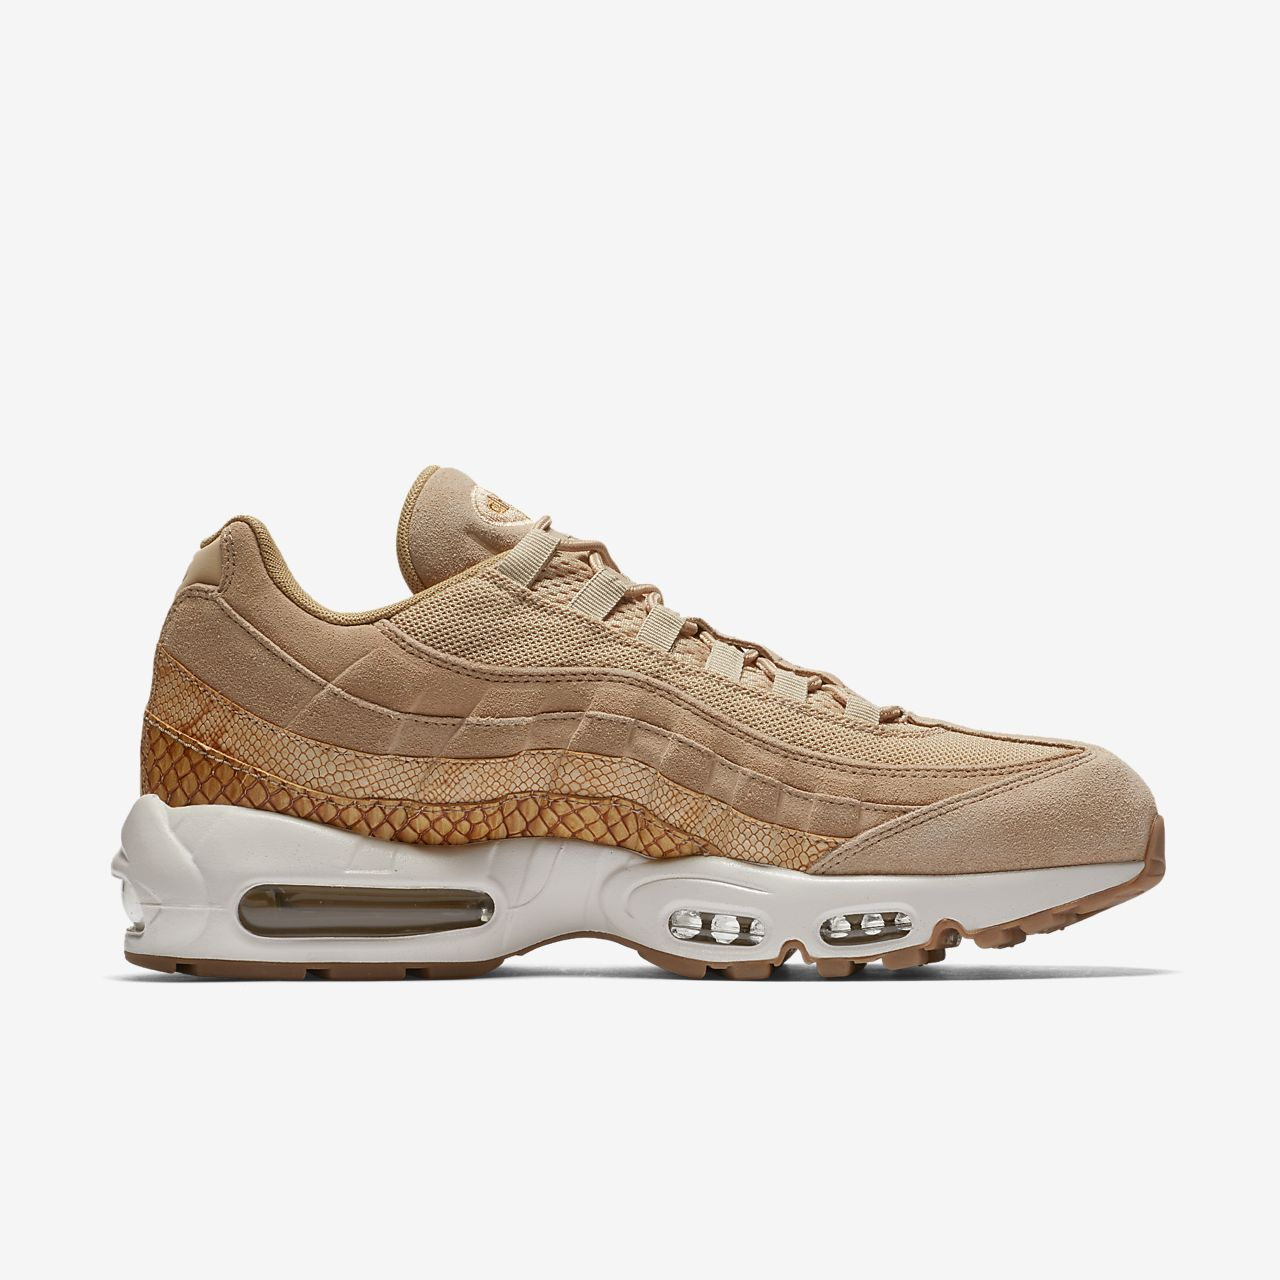 Royaume-Uni disponibilité f2a05 f4379 nike air max 95